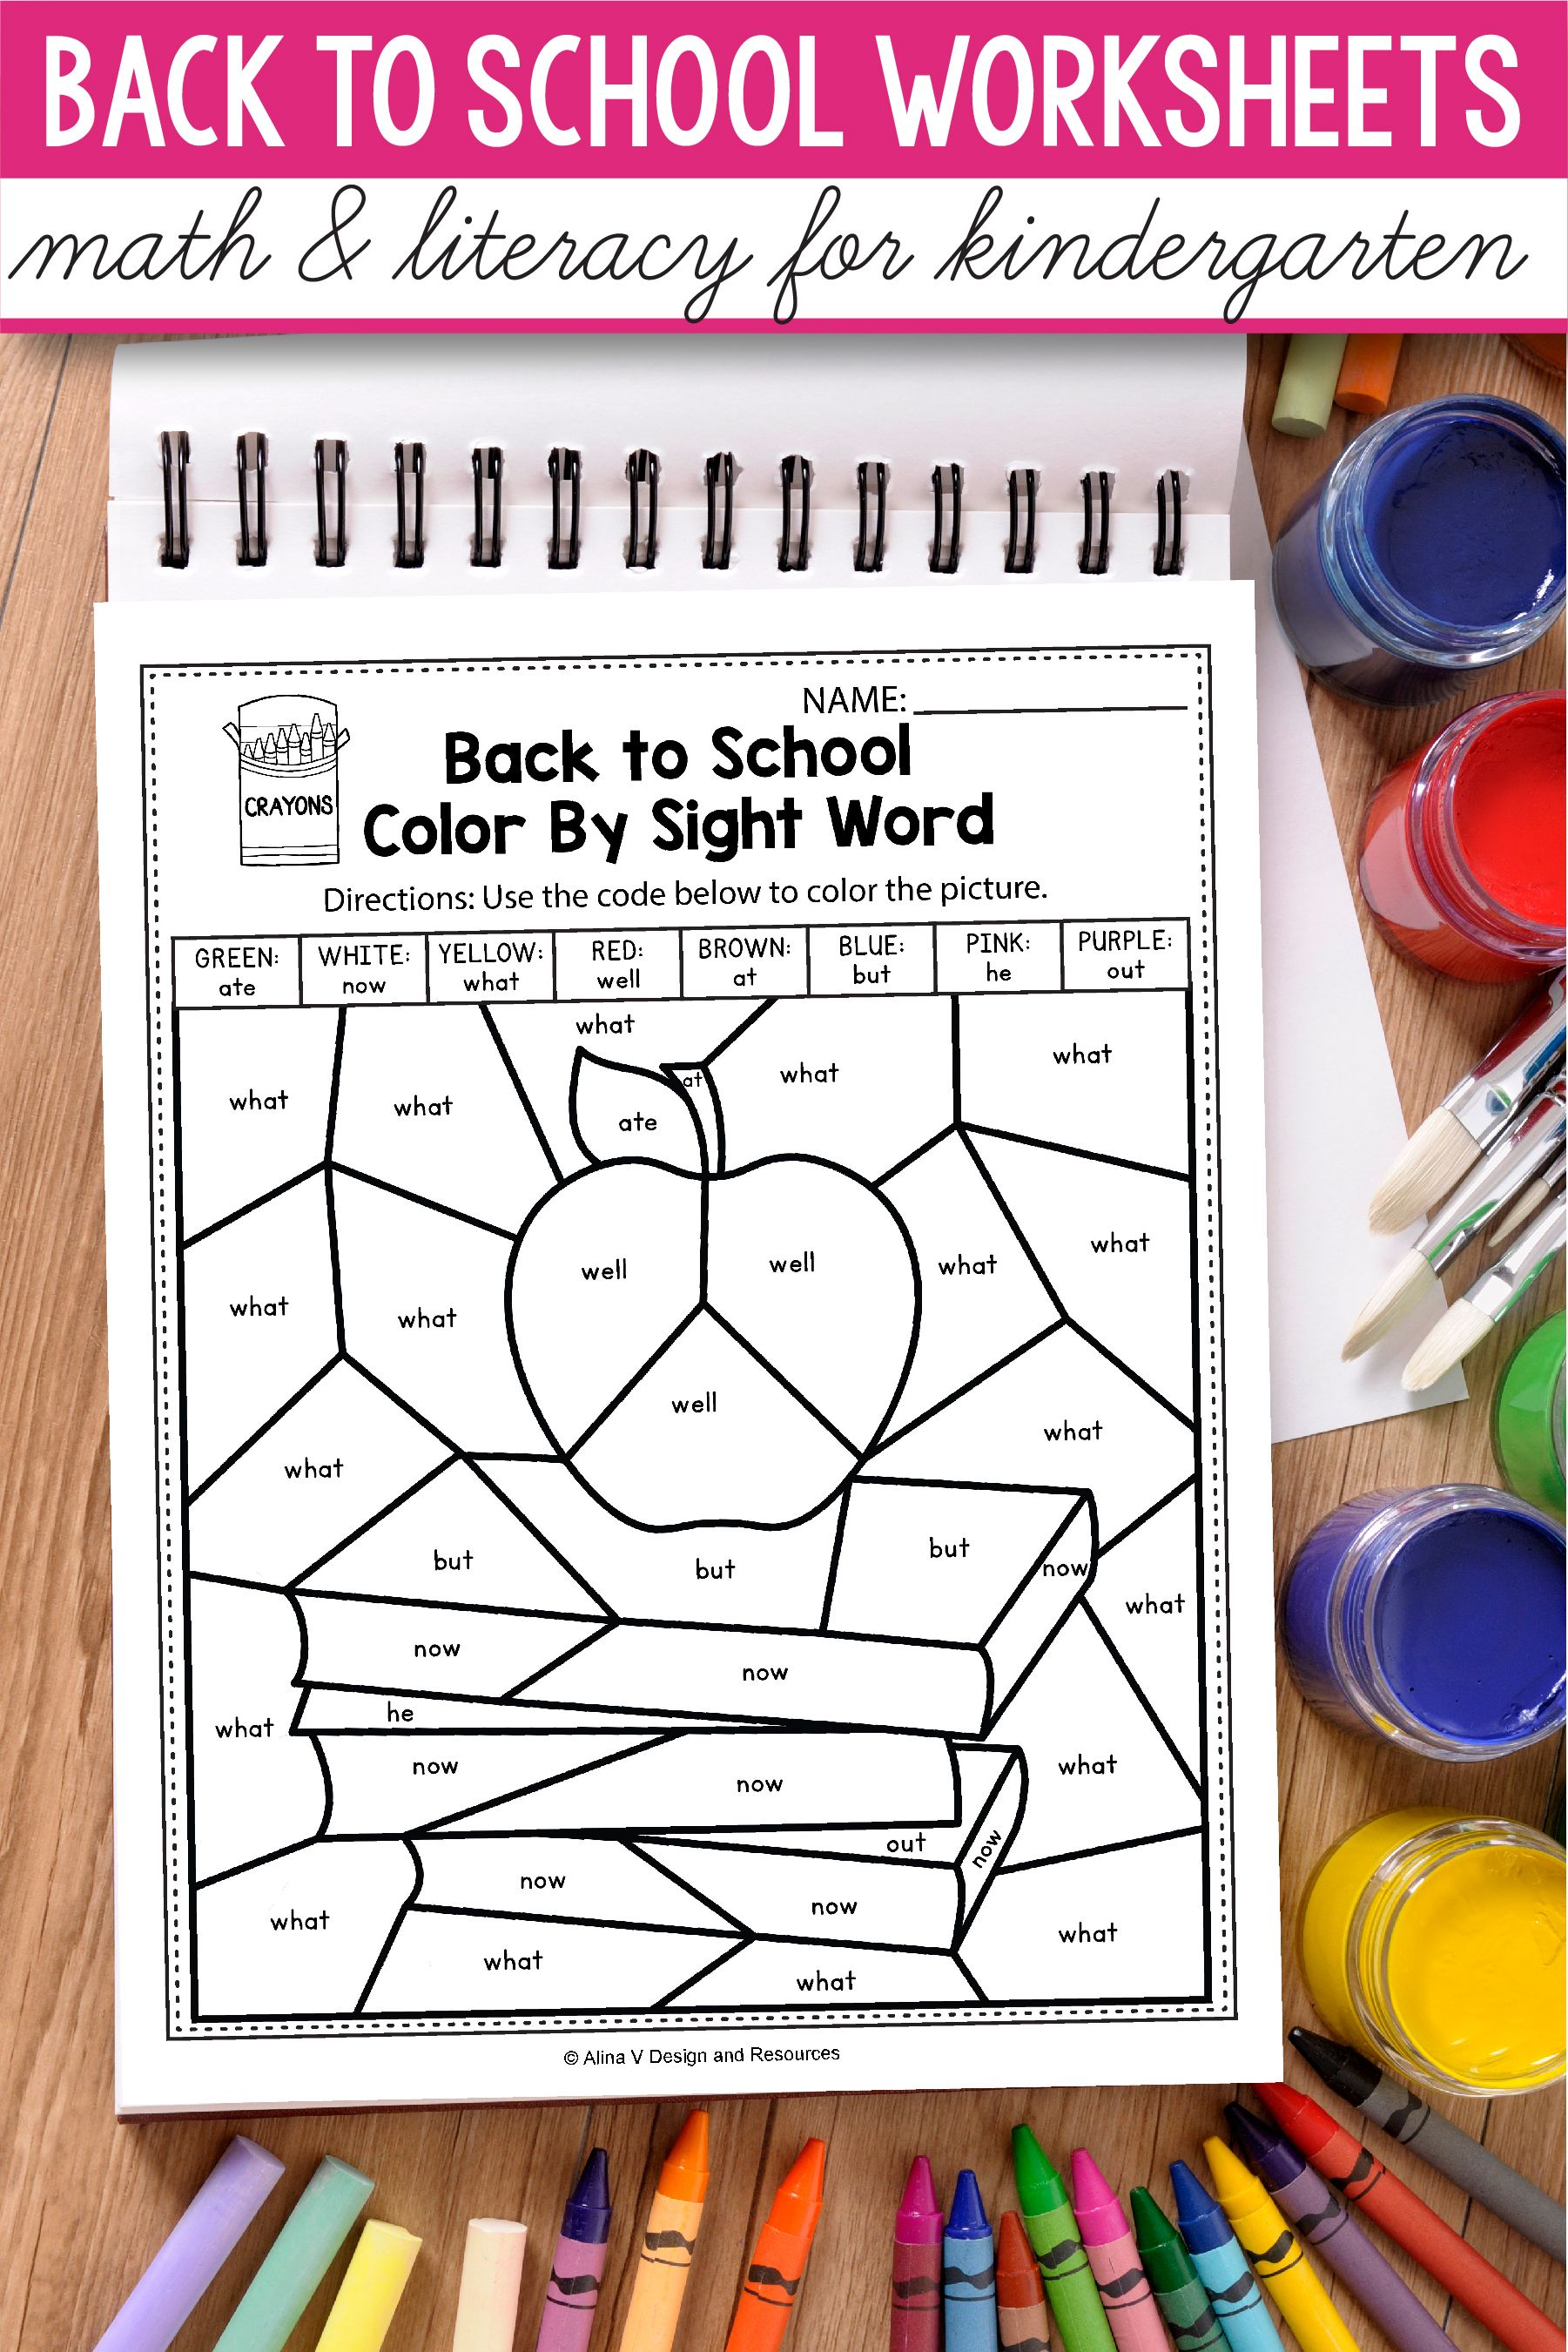 Back To School Math And Literacy Activities For Kindergarten 1st Grade And Preschool Is Fun With